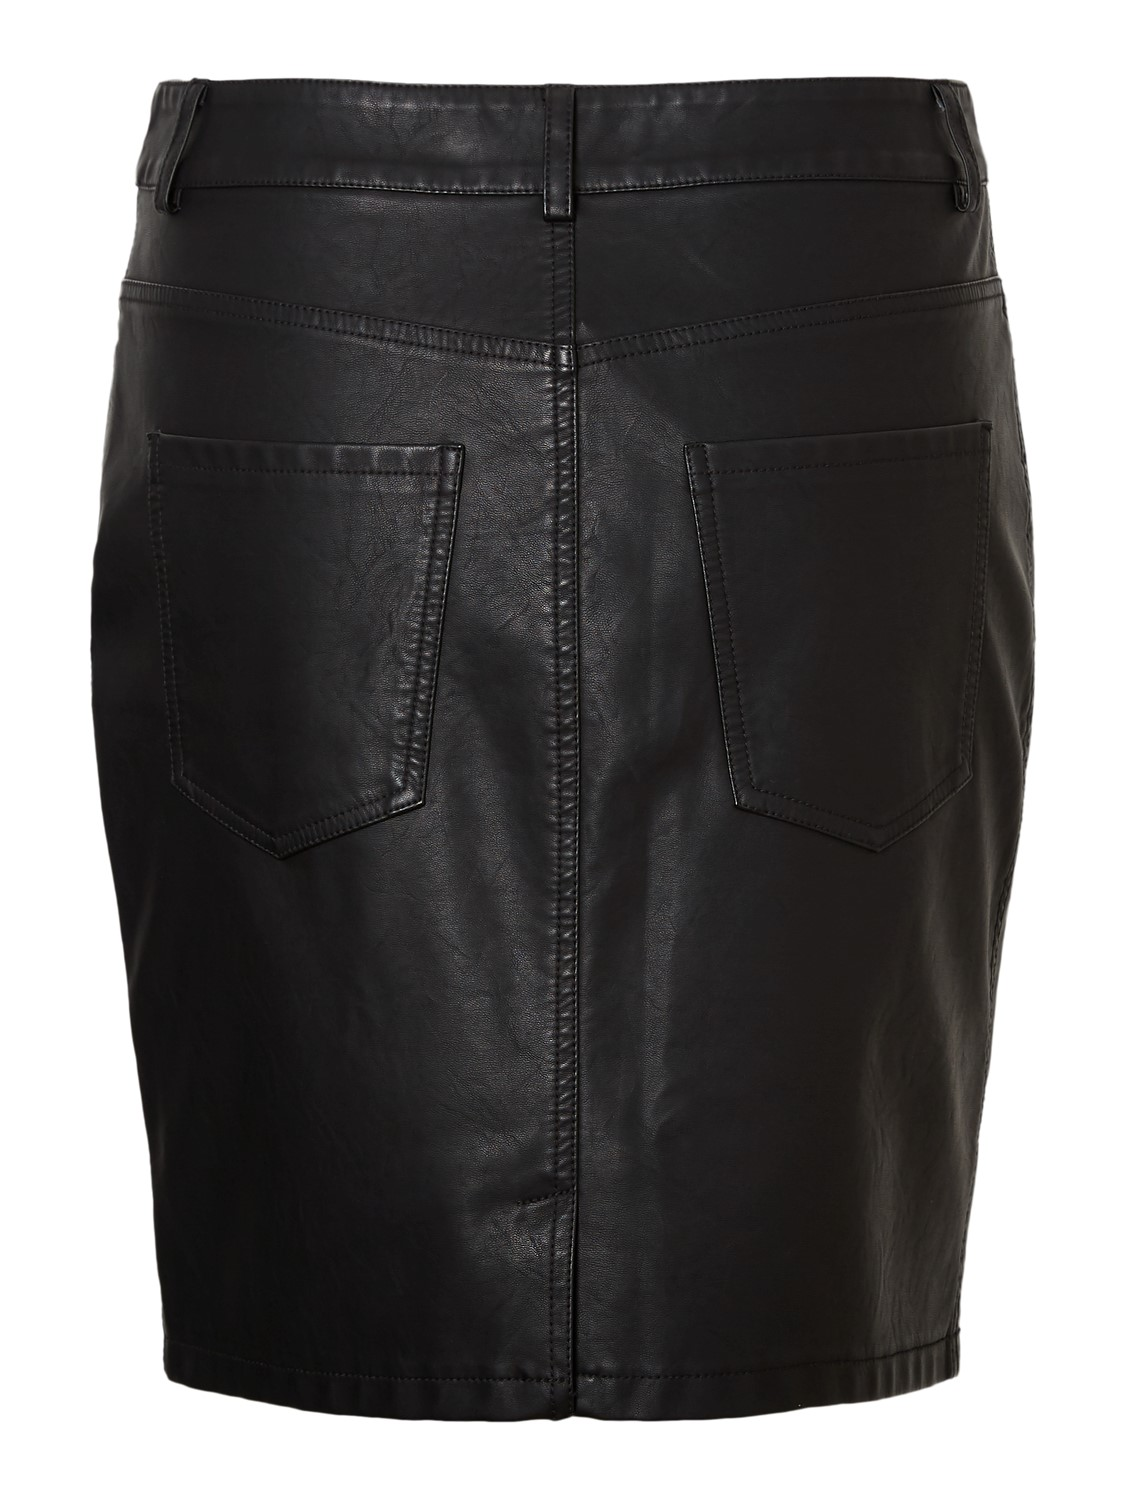 noisy-may-damen-rock-nmbelexi-rebel-skirt